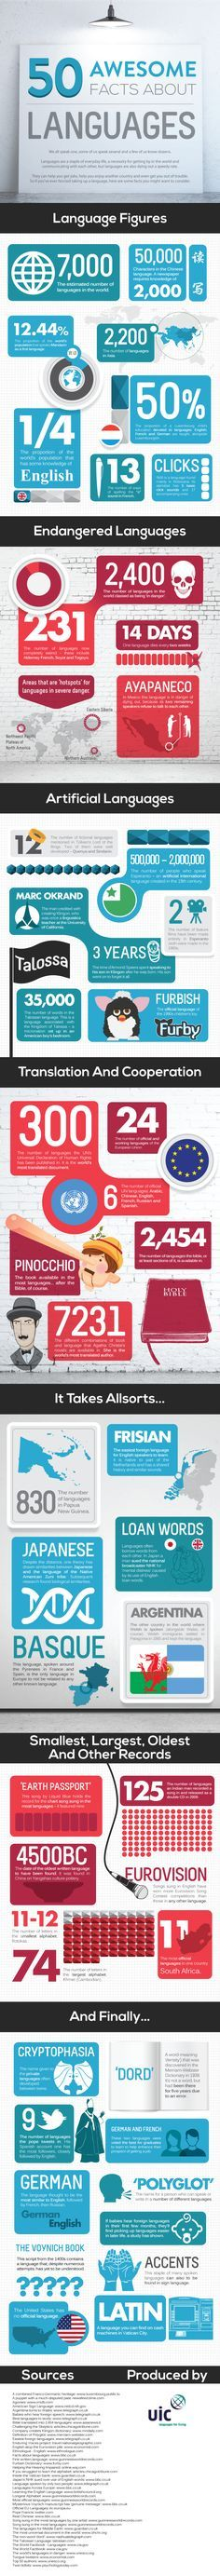 50 Awesome Facts About Languages. I cover language diffusion, isolation, and extinction in my AP Human Geography course. This infographic is outstanding! Even if your subject area does not specifically cover language- it is a central issue developing due to a more connected world. Those who see no economic benefit of their native language will cease to speak it, however, with many tribal languages having no literary tradition, the knowledge and culture of natives is lost with the last…